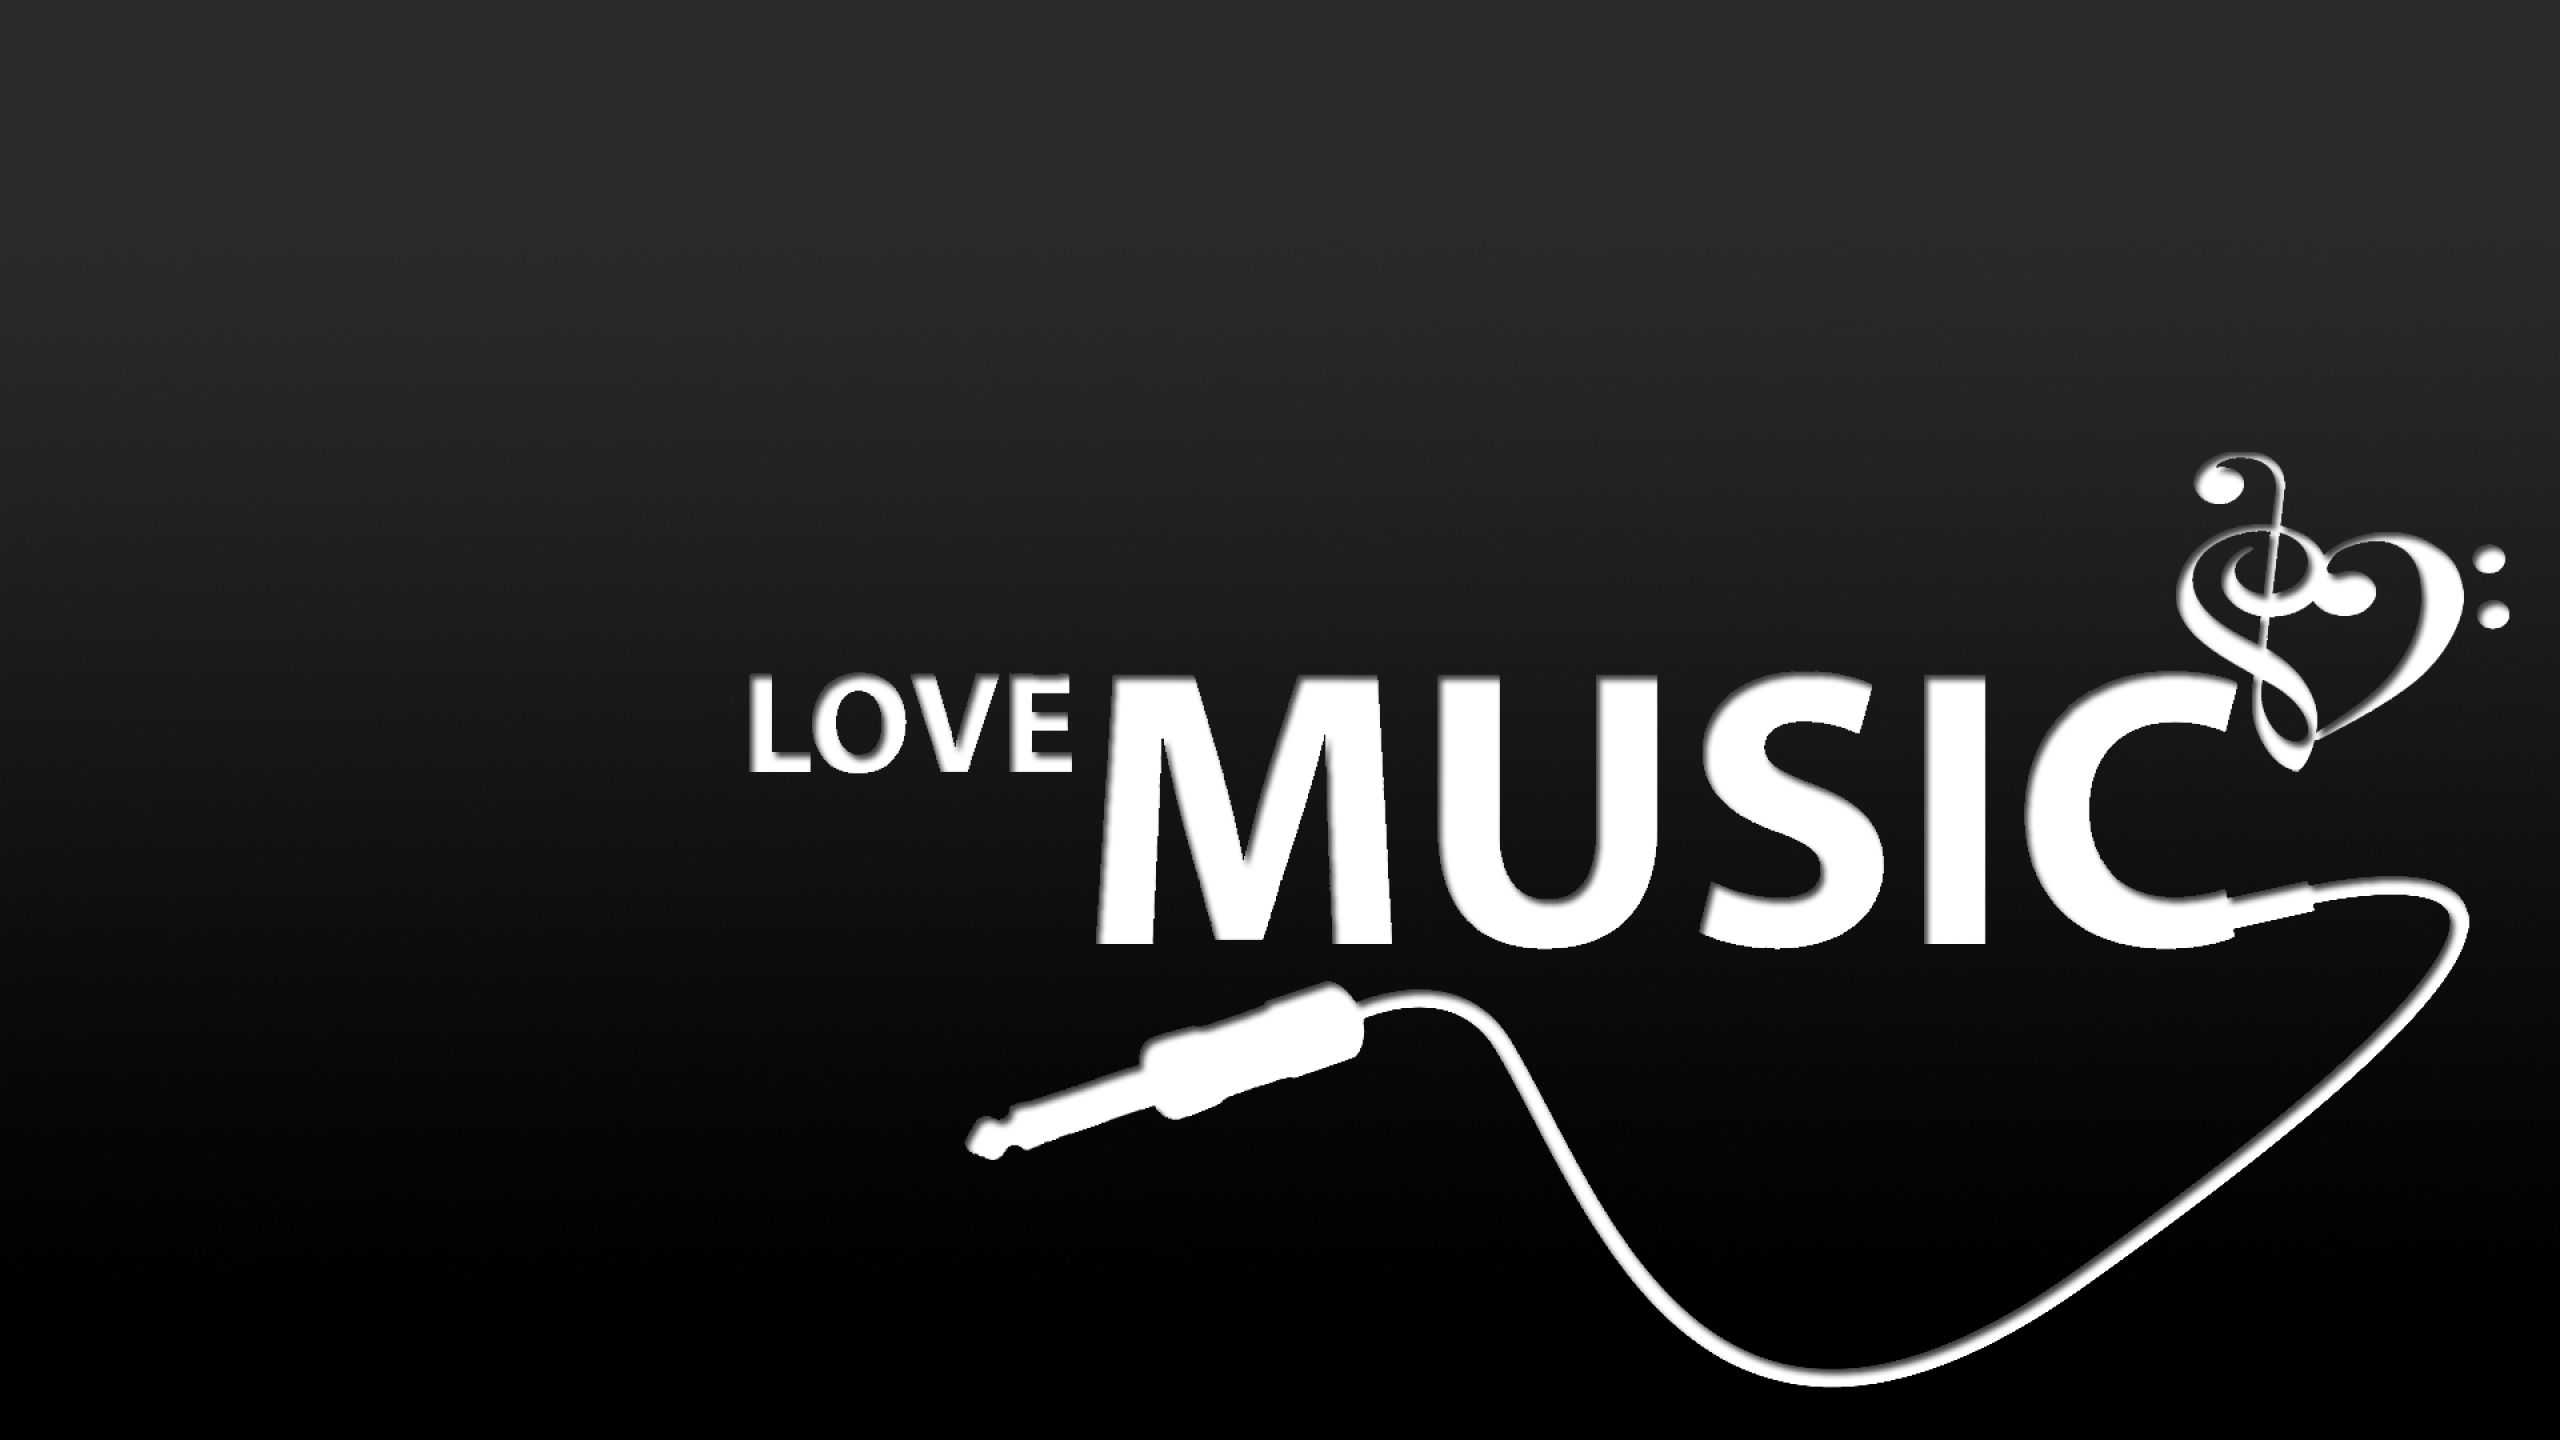 i love music essay Category: essay about love title: essay about love: speaking of love.